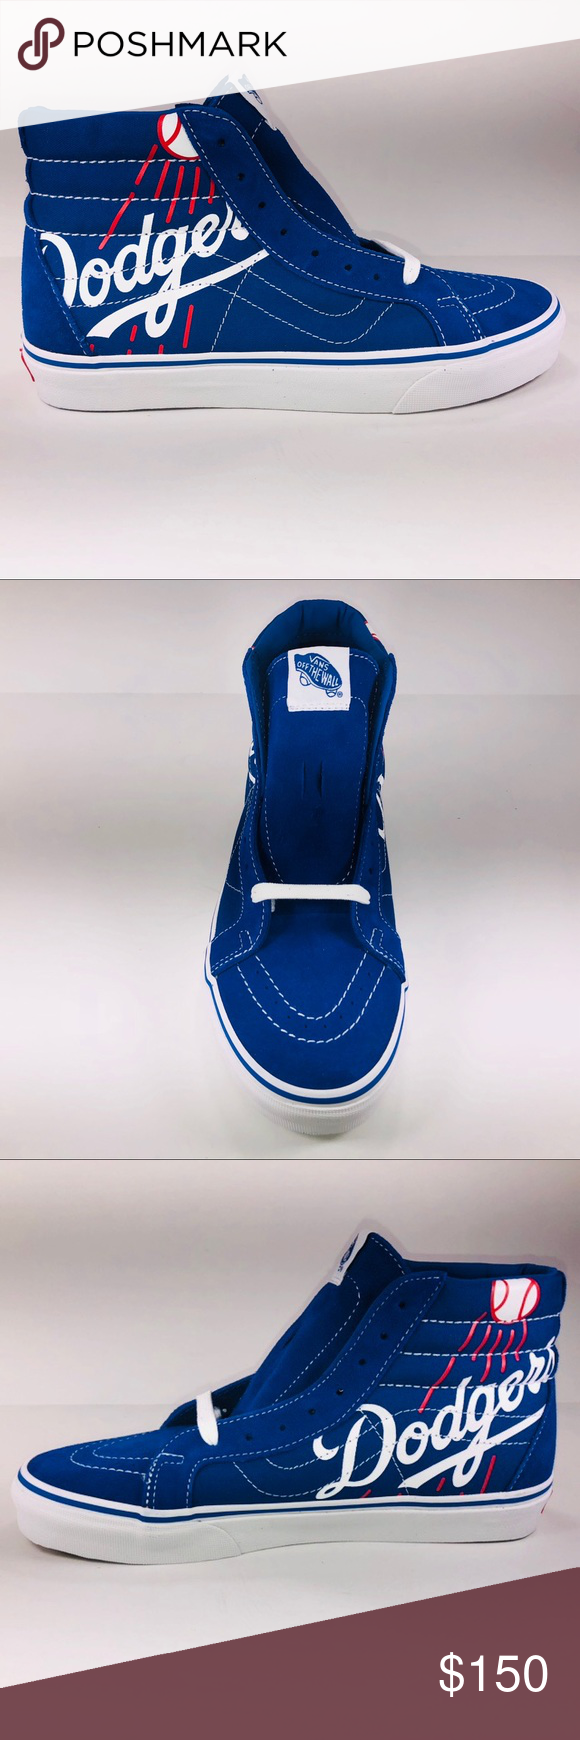 18aa848dbe VANS SK8 HI MLB LA Dodgers Classic Blue Sneakers New With Box See Pictures  For Details